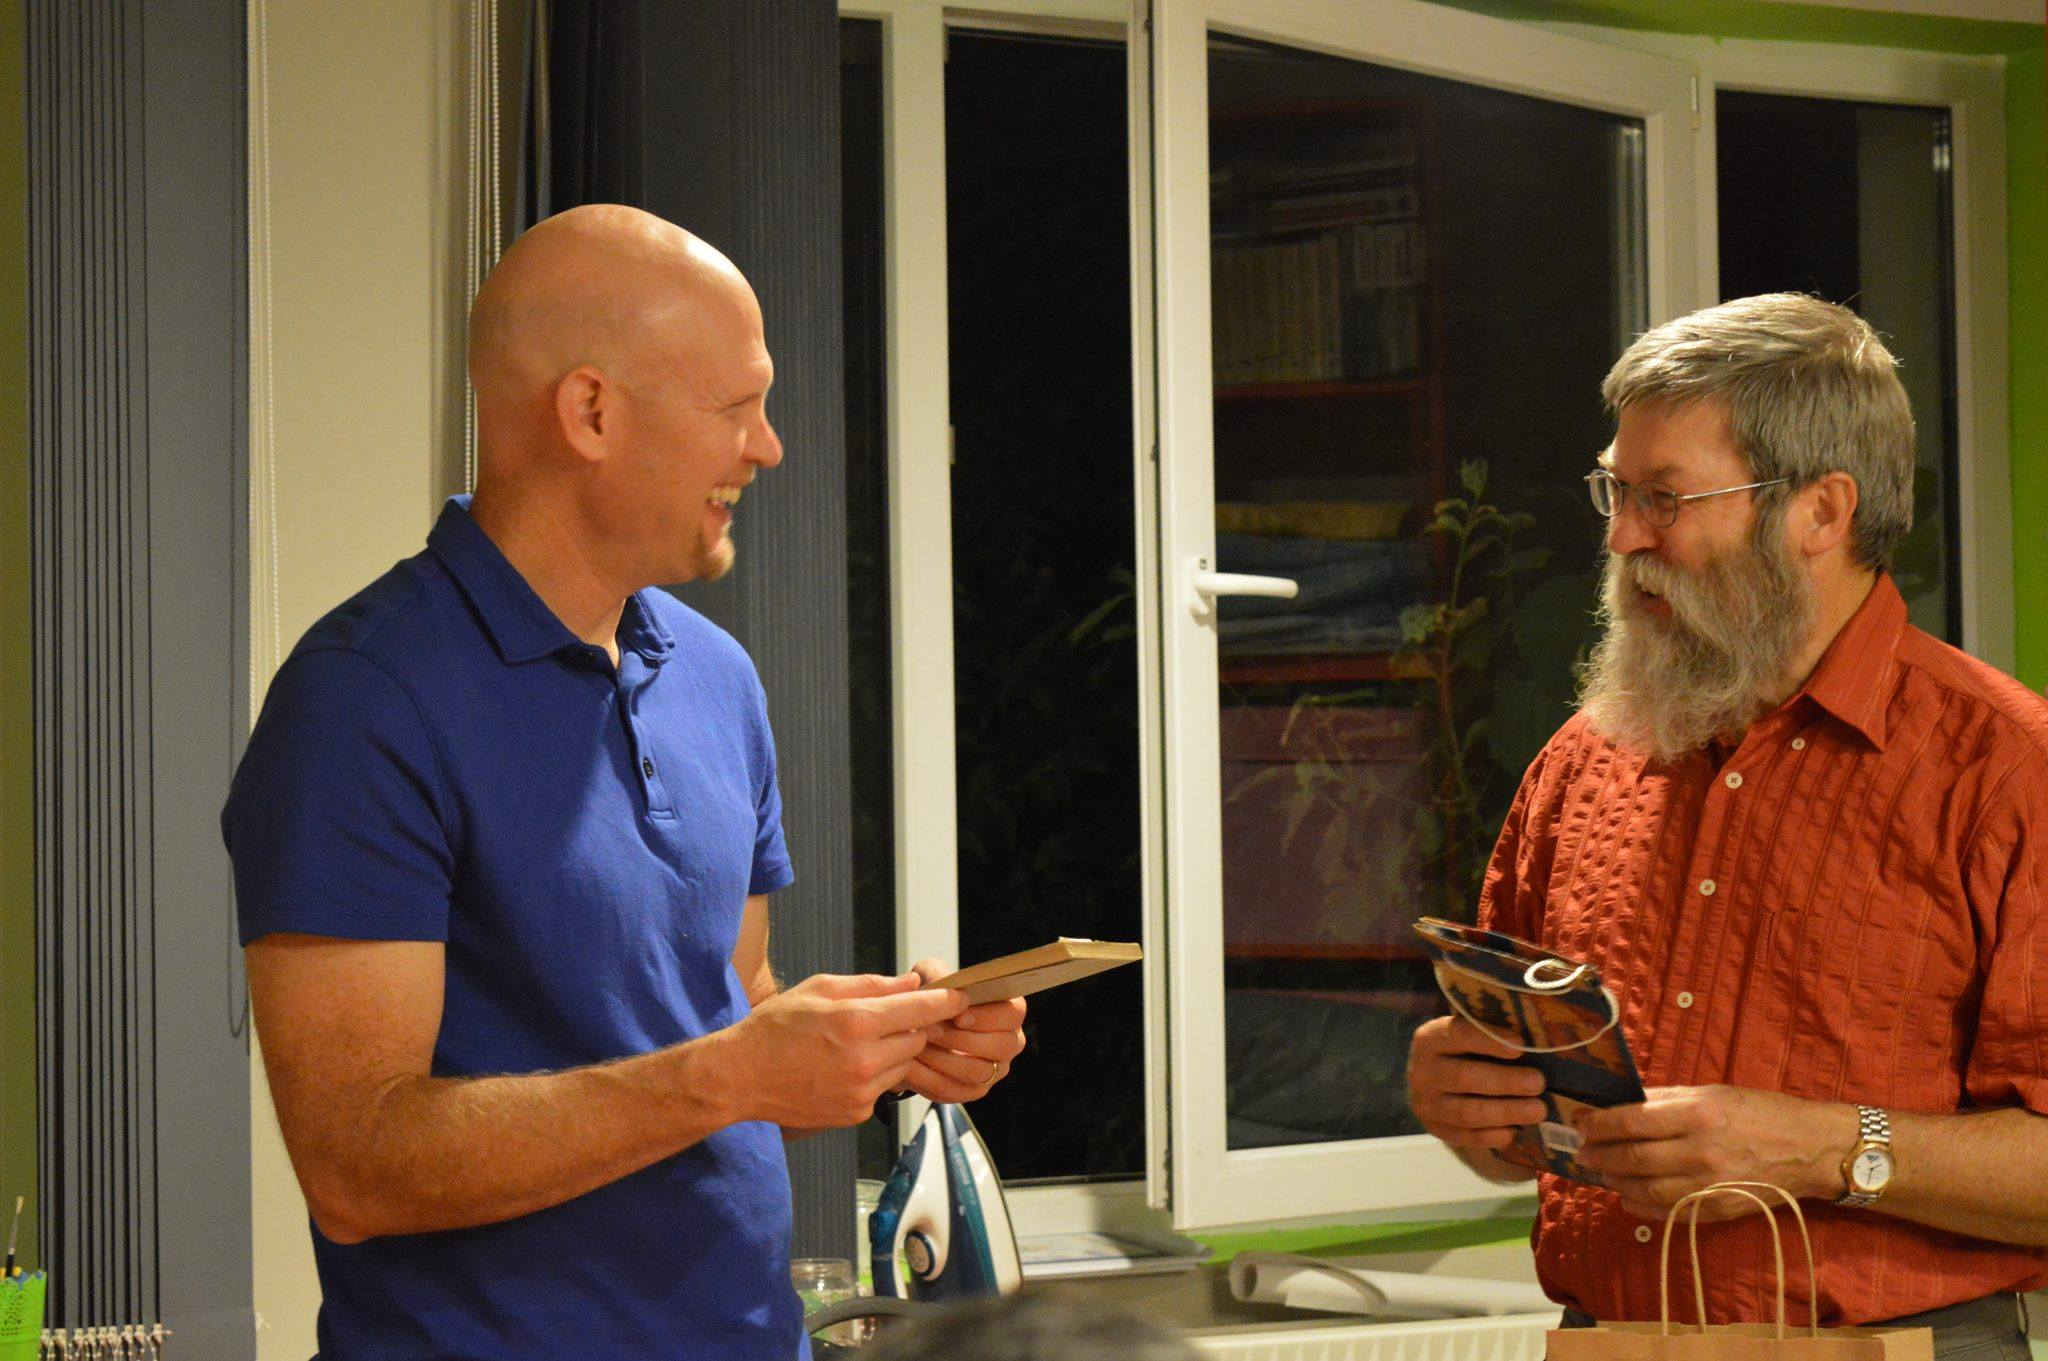 Dr. Dave Coryell and Mr. Andreas A. Rudolf